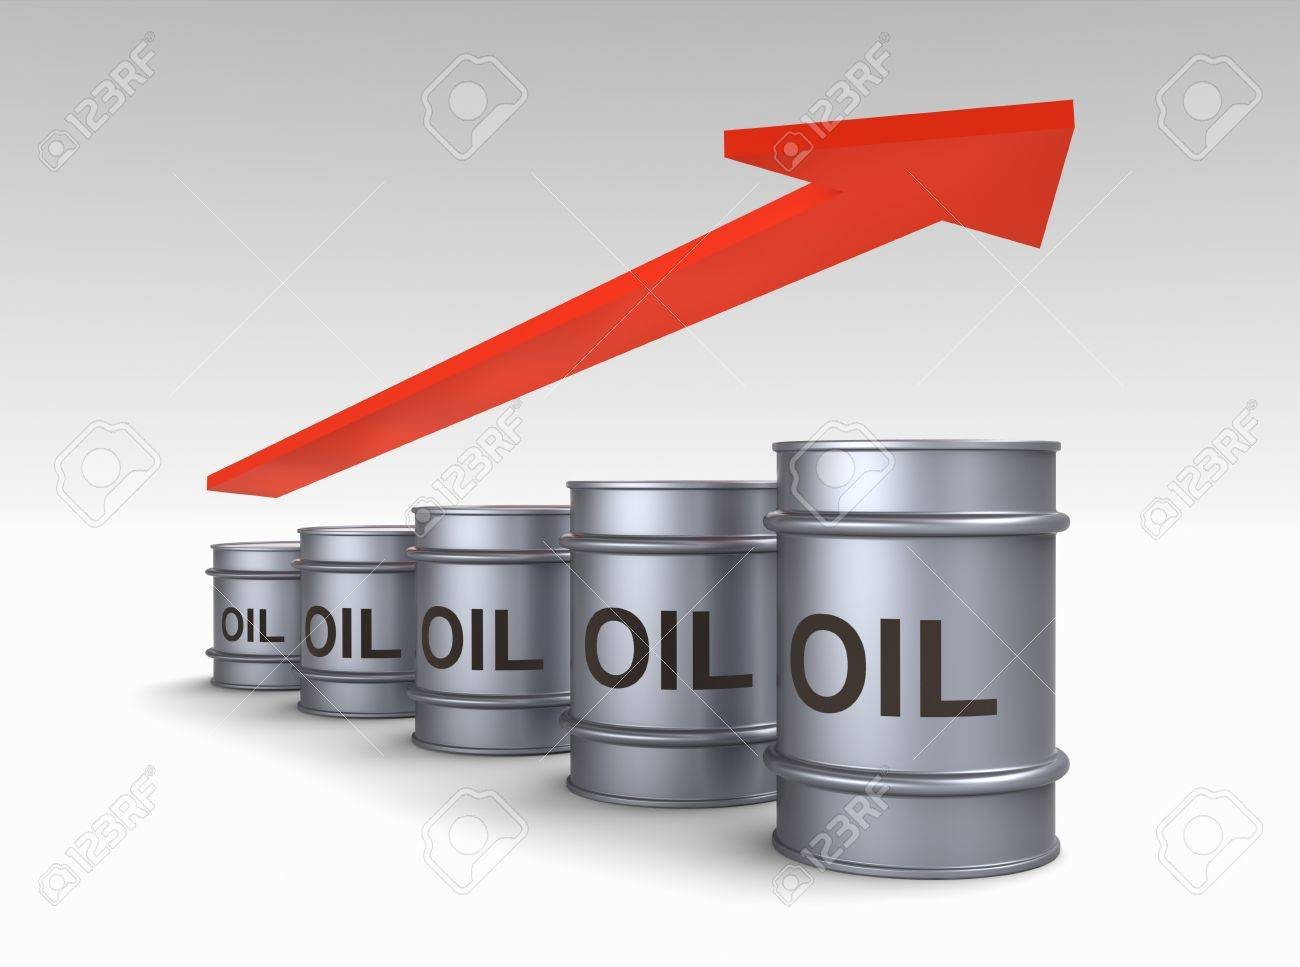 Increasing price of oil concept. Computer generated 3D photo rendering. Stock Photo - 9388686